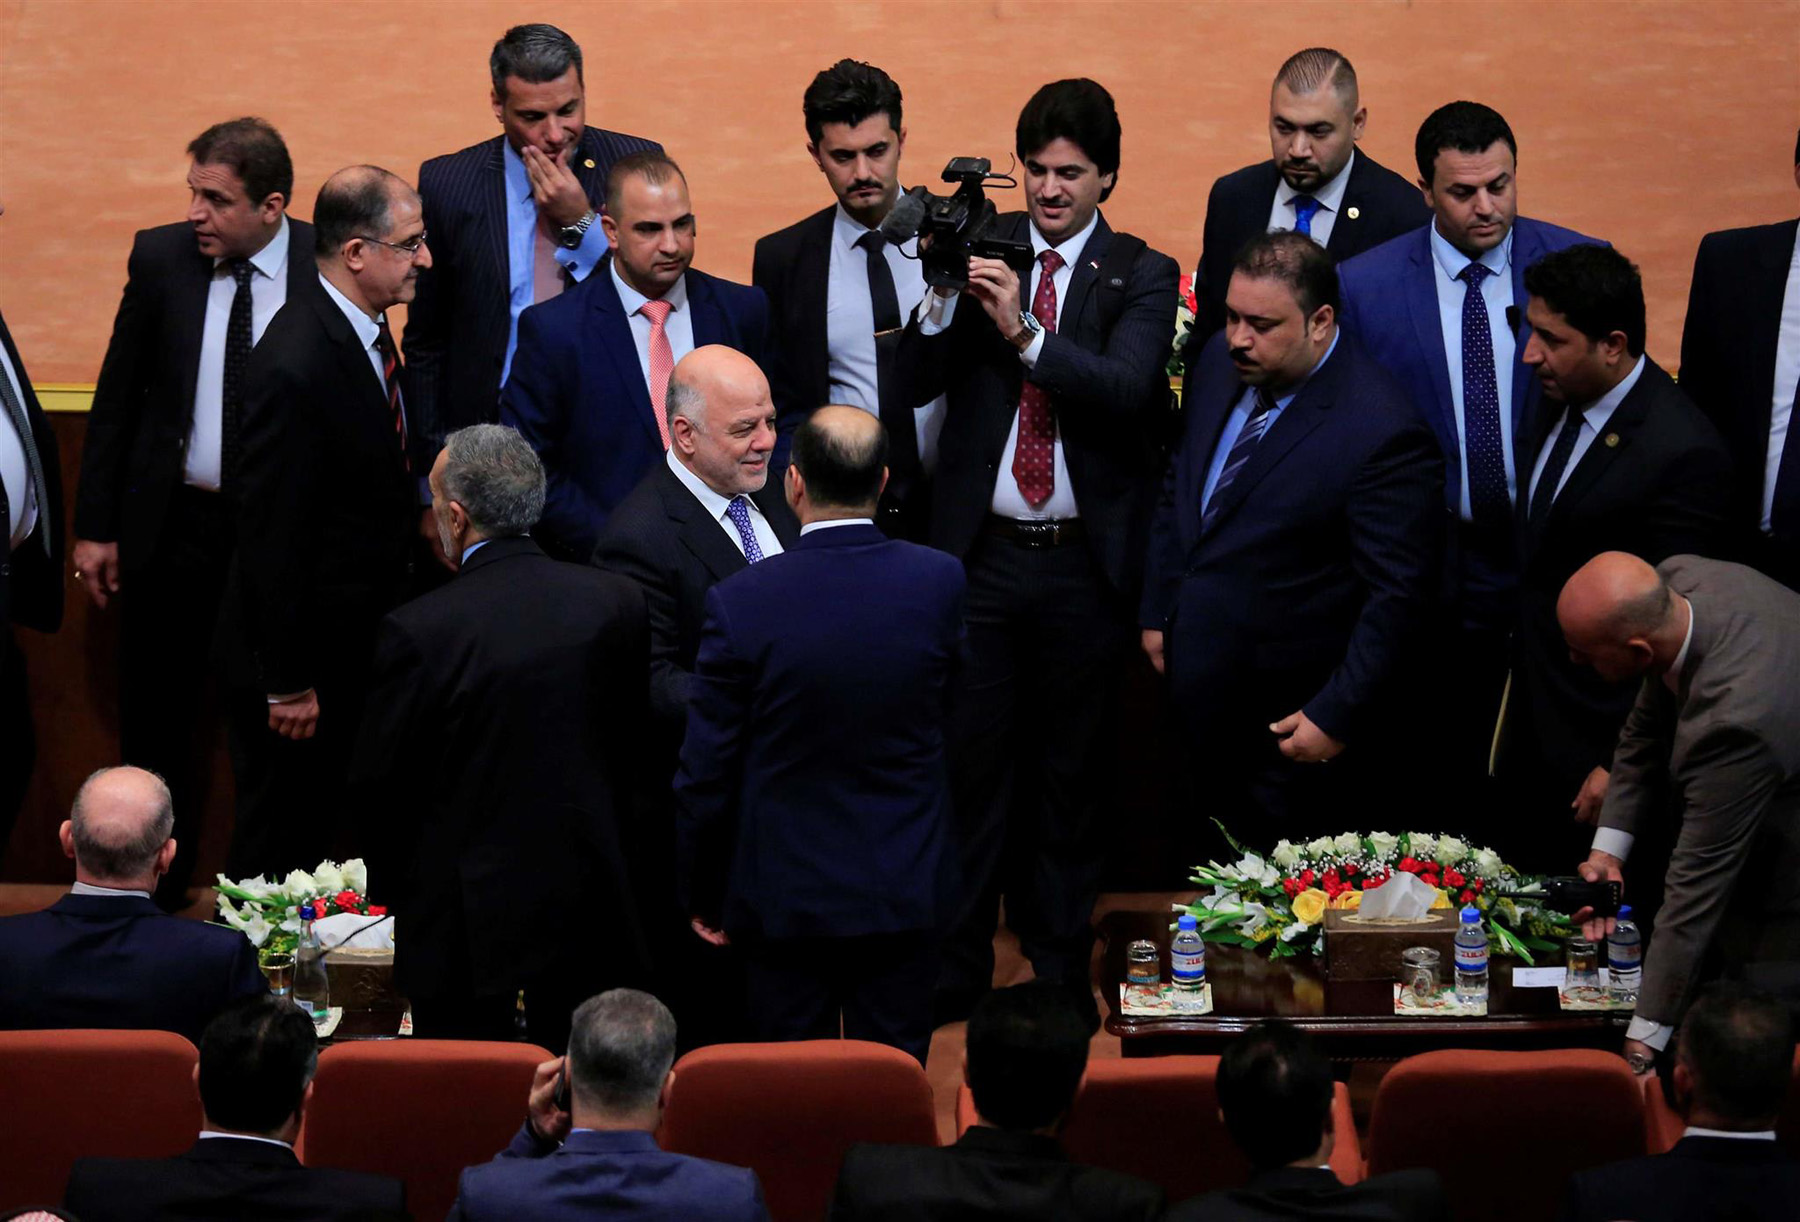 Iraqi Prime Minister Haider al-Abadi during a session of the Iraqi parliament in Baghdad, on September 3.                                                                           (Reuters)